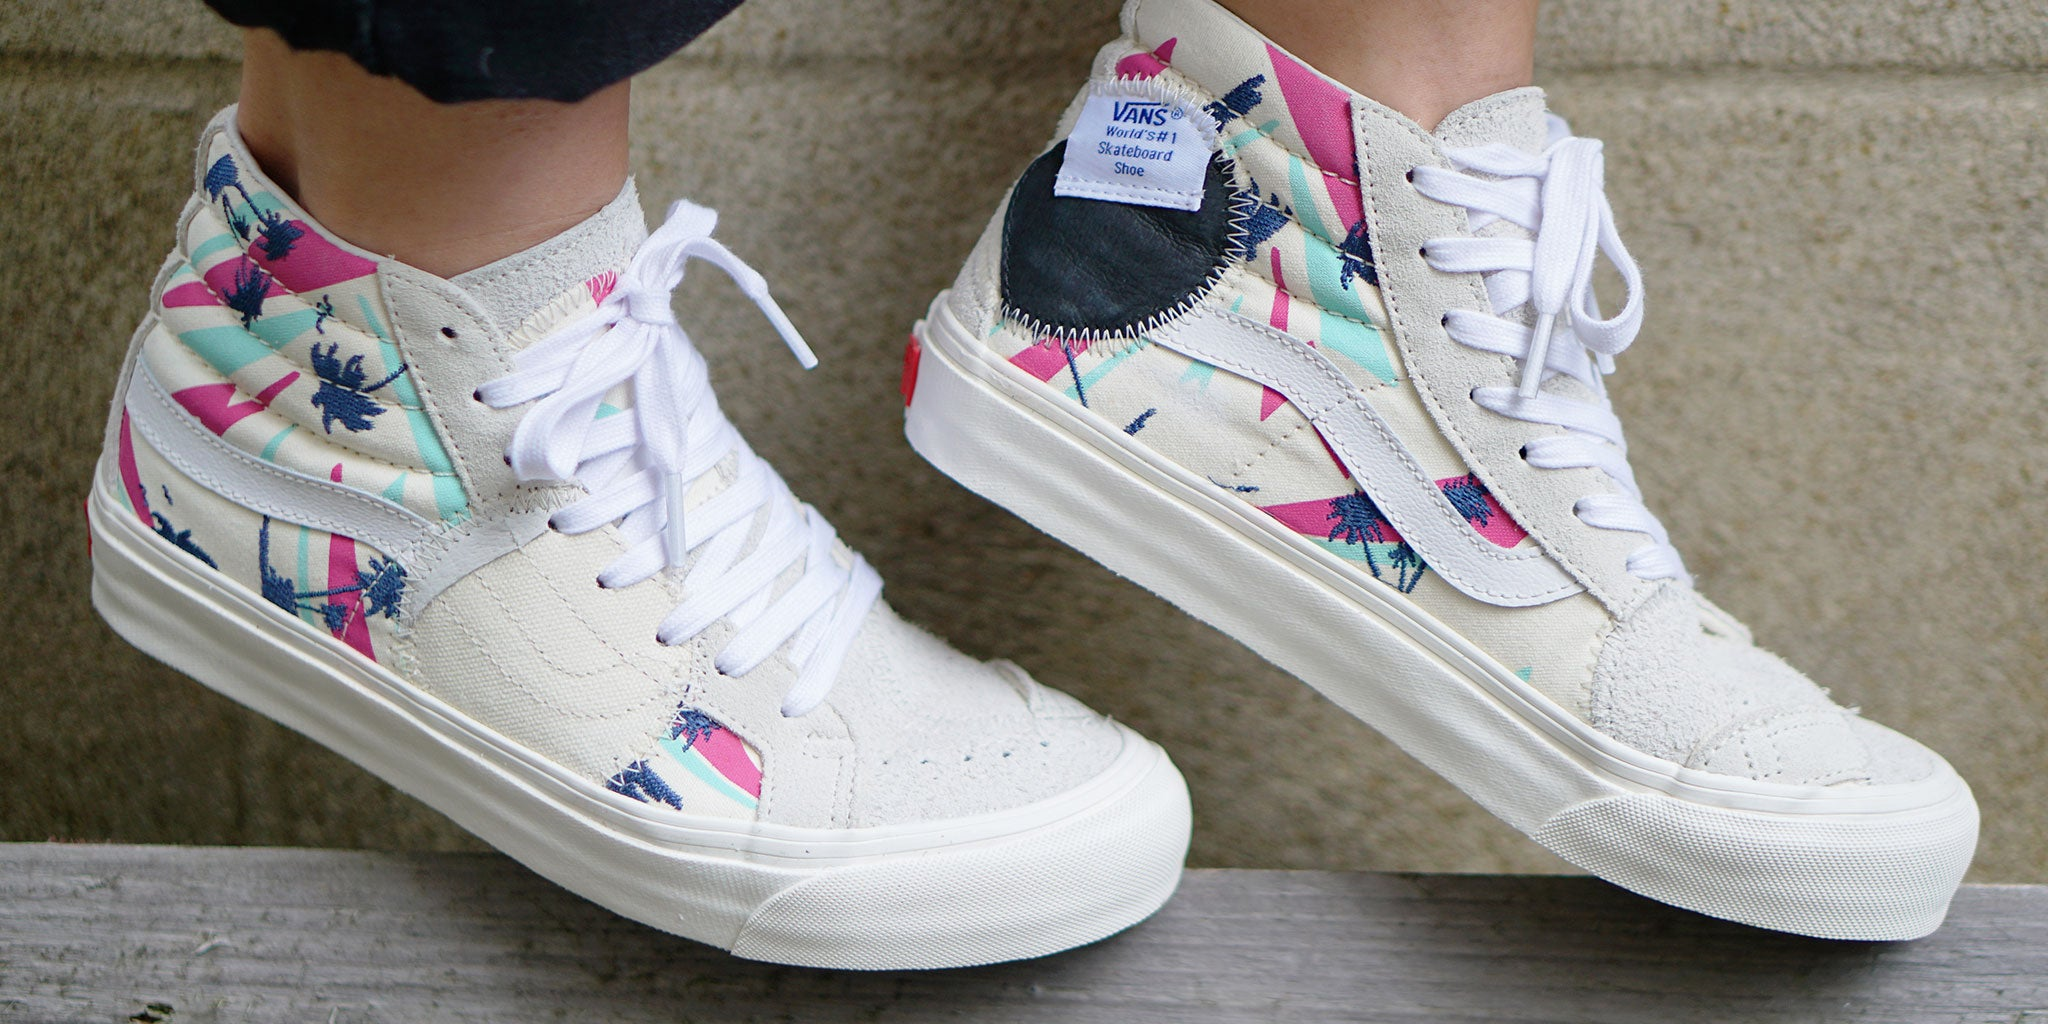 e08282c260 Bulletin  Summers here with the Vans sk8-hi bricolage lx